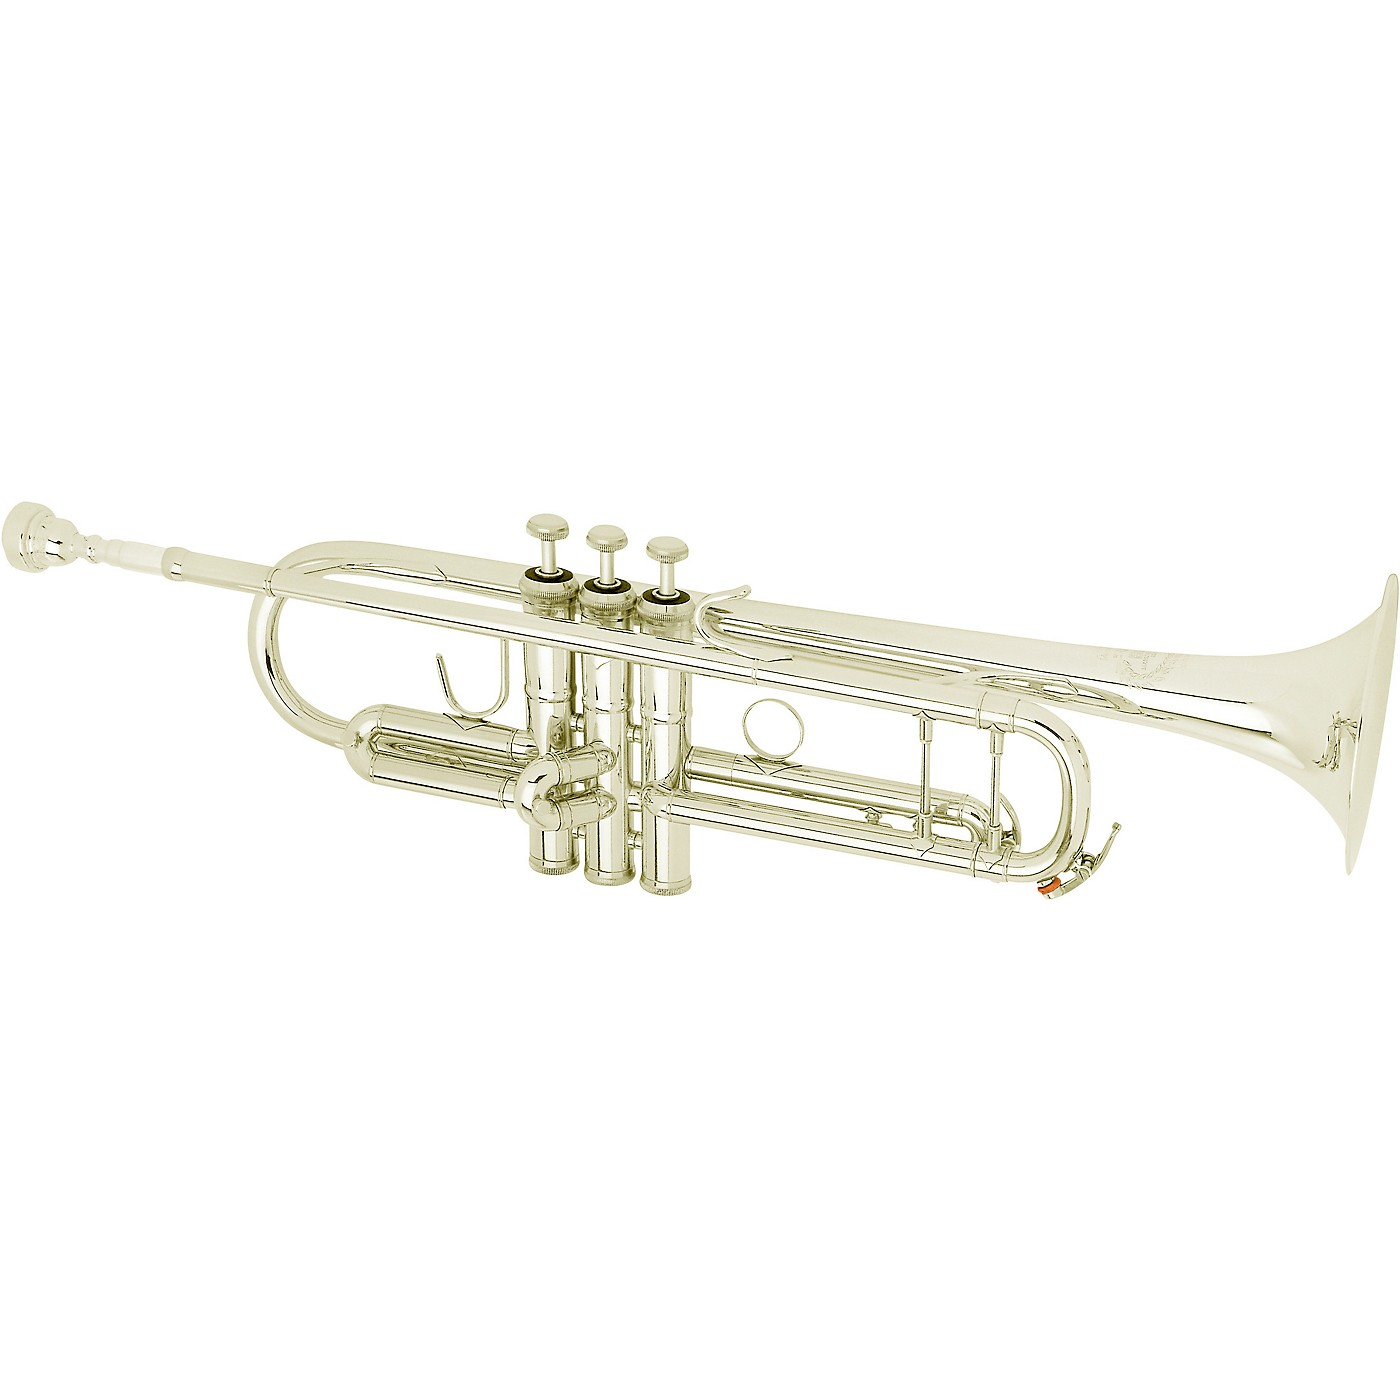 B&S 3143 Challenger II Custom Series Bb Trumpet thumbnail